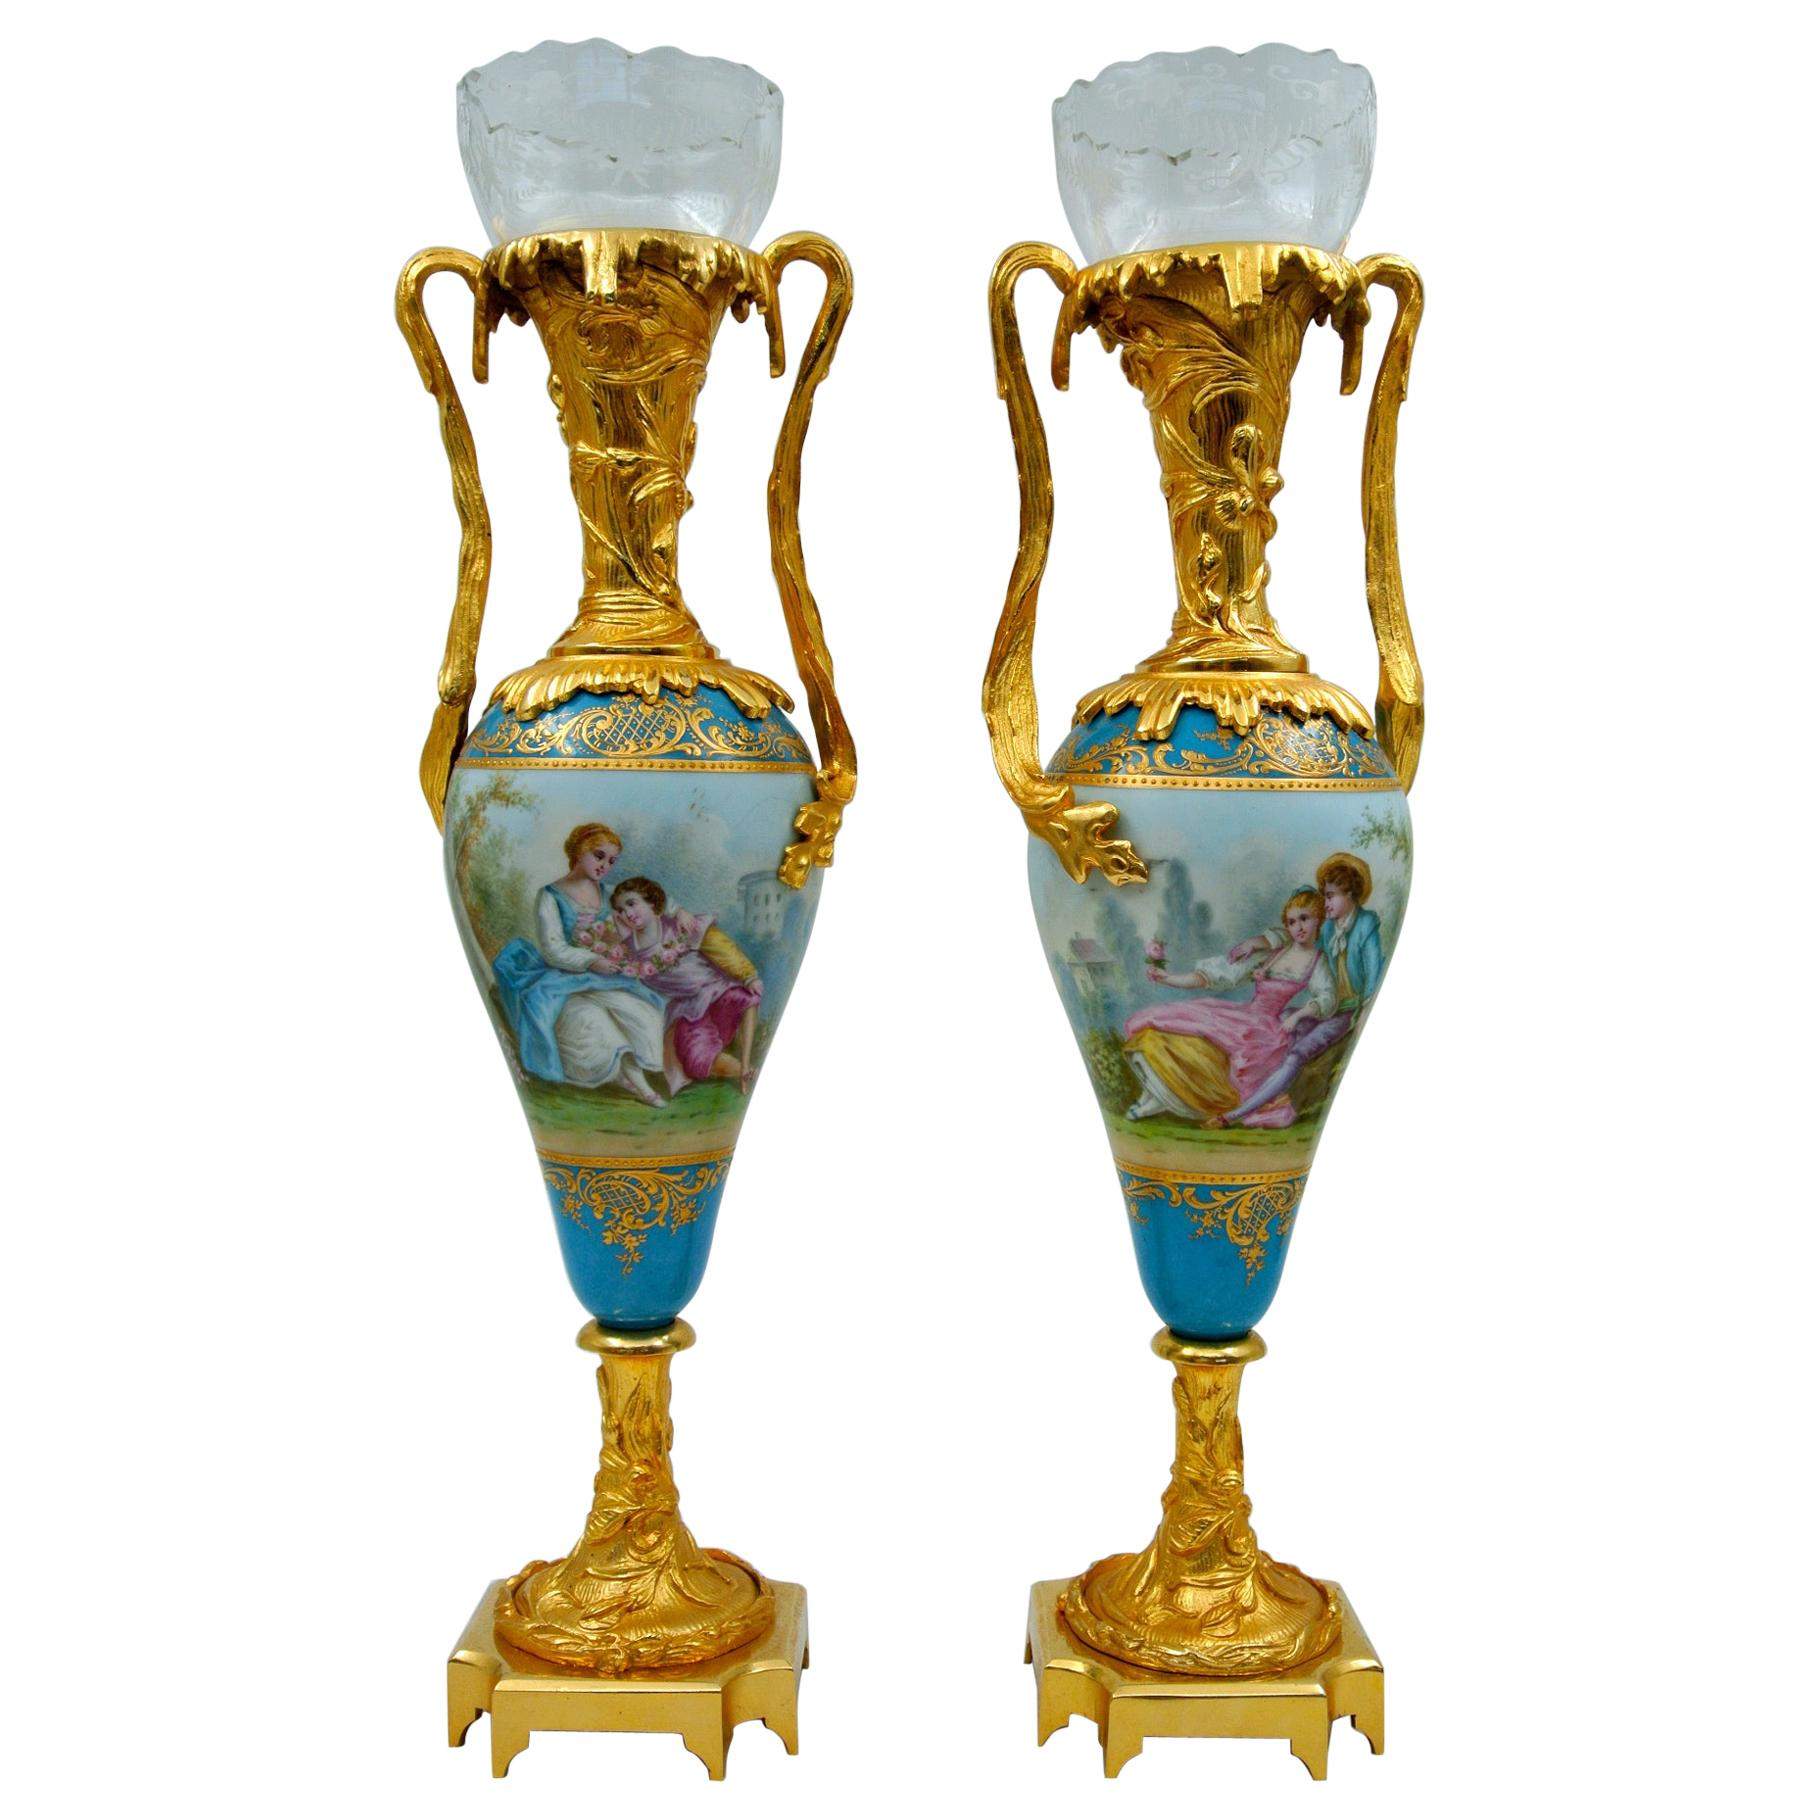 Pair of Porcelain Vases, Gilded Bronze and Crystal